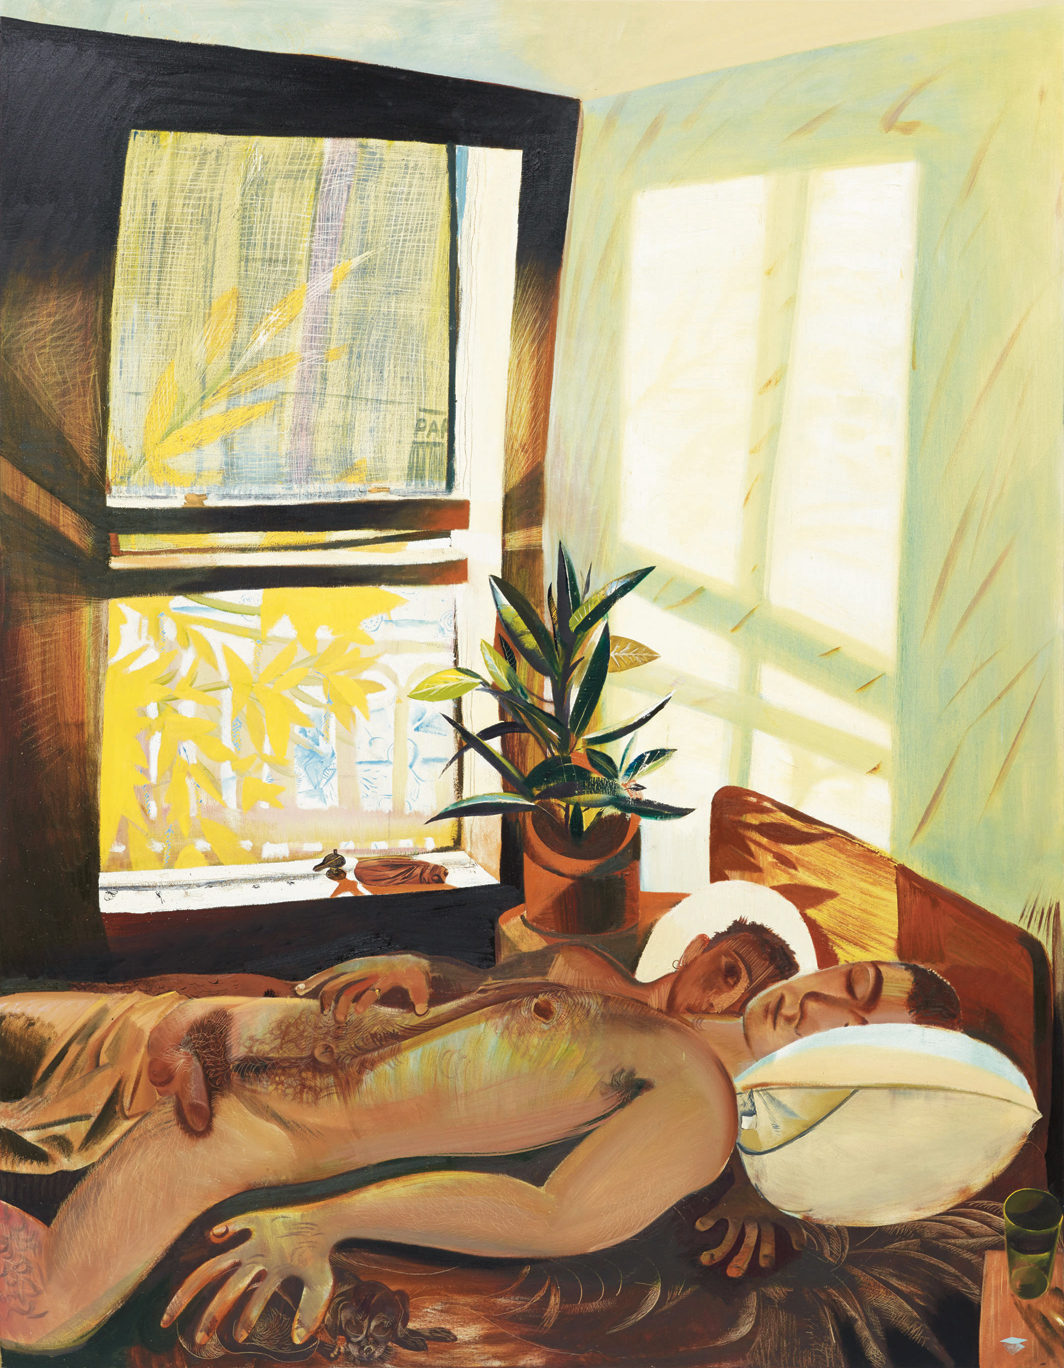 "Louis Fratino, Waking up first, hard morning light, 2020, oil on canvas, 90 × 70""."